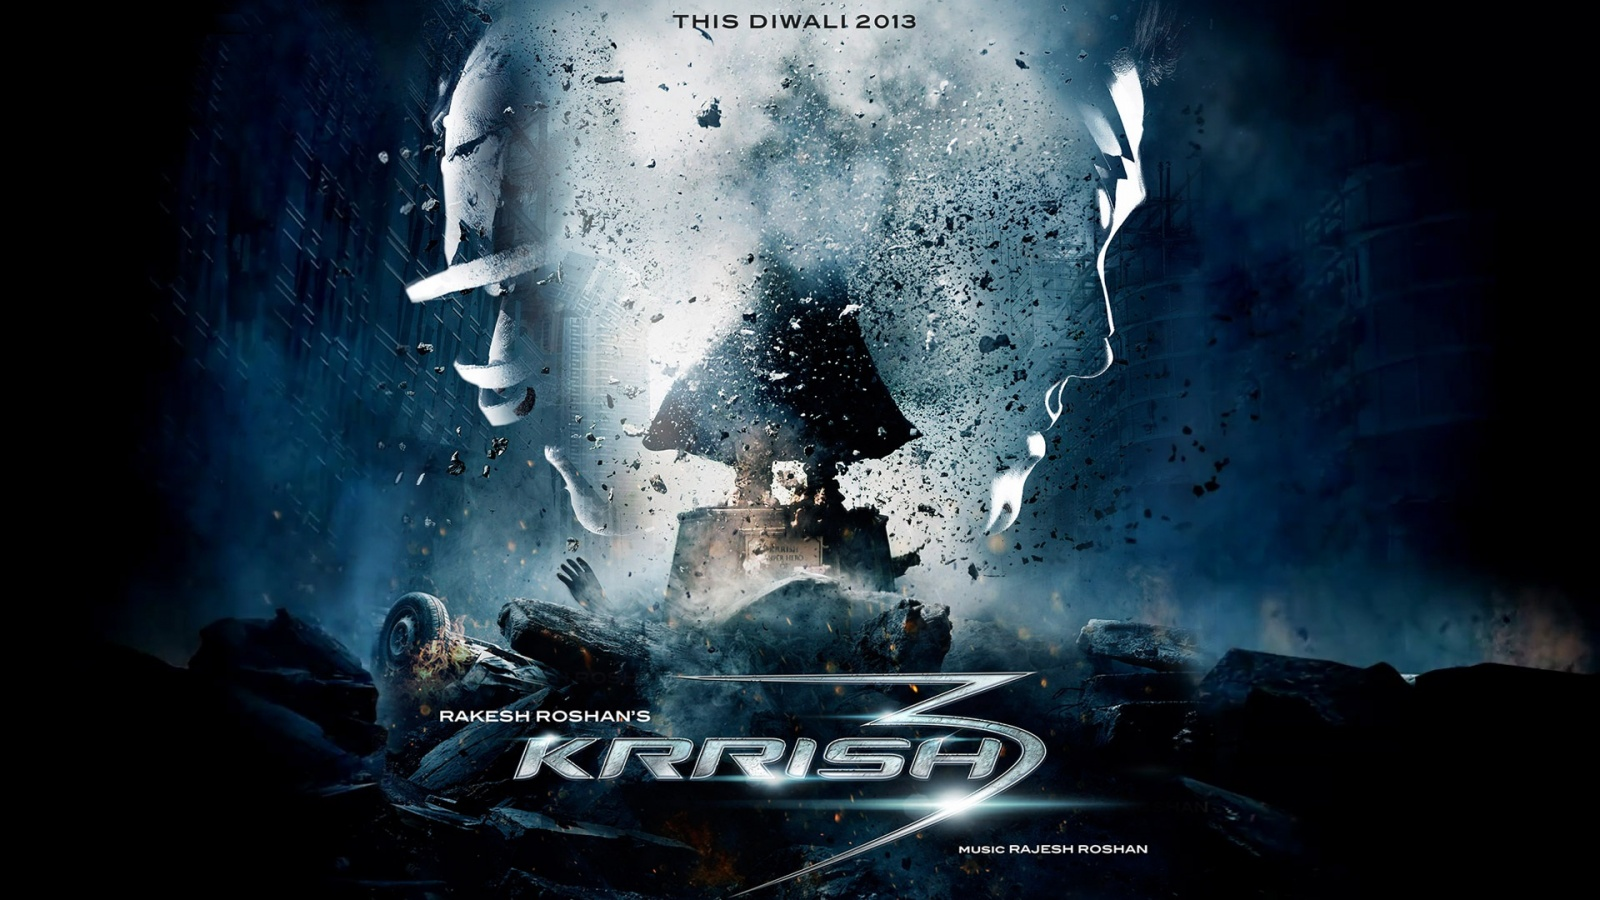 Krrish 3 Movies Wallpapers - 1600x900 - 417042